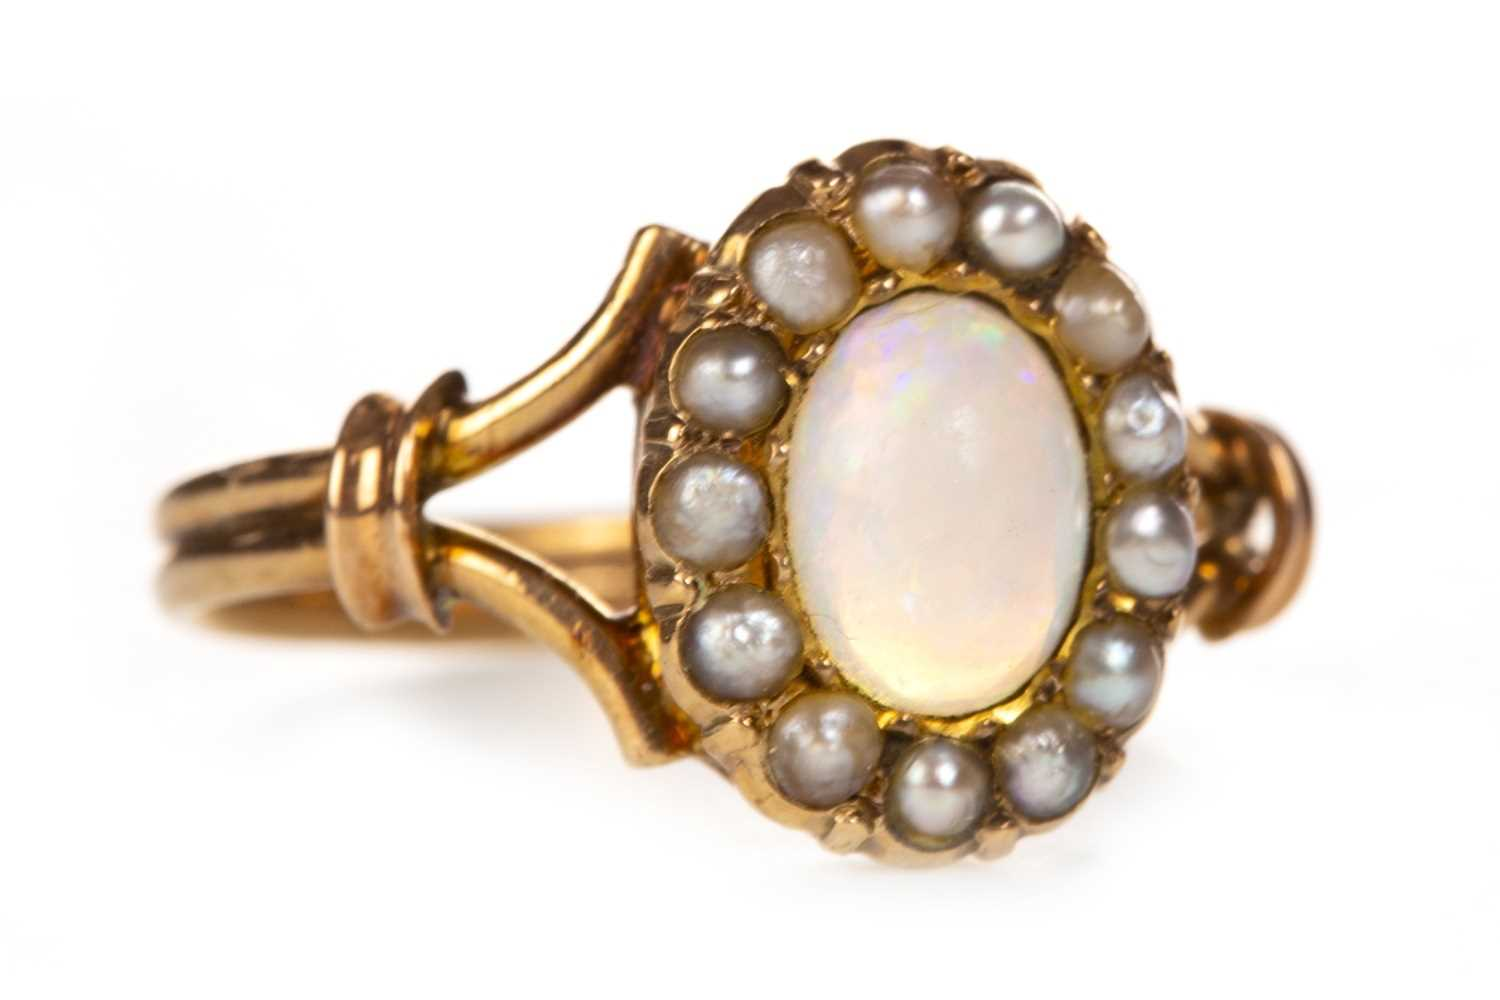 Lot 8 - A LATE VICTORIAN OPAL AND PEARL RING